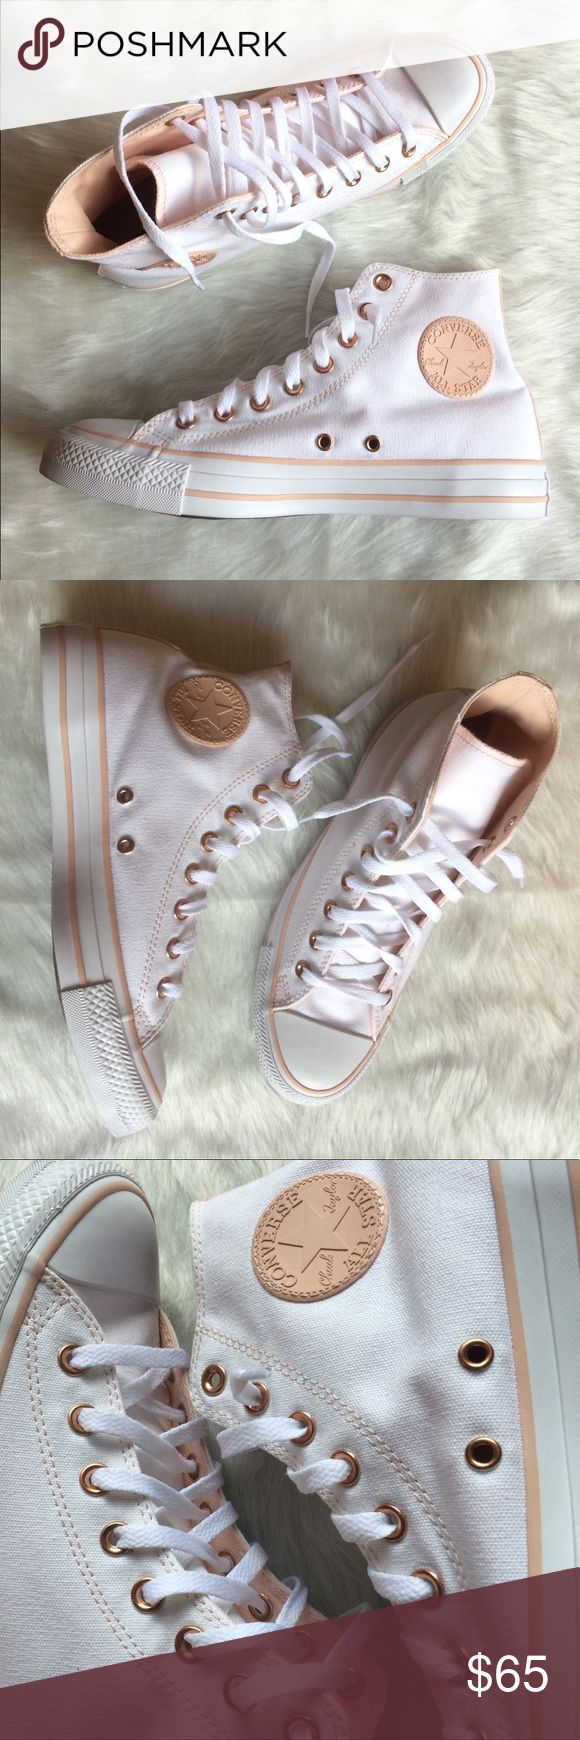 CONVERSE WOMENS SIZE 10 WHITE ROSE GOLD SHOES Shoes are custom made from the Nike website. Nike iD. Brand new without box. Converse Shoes Sneakers